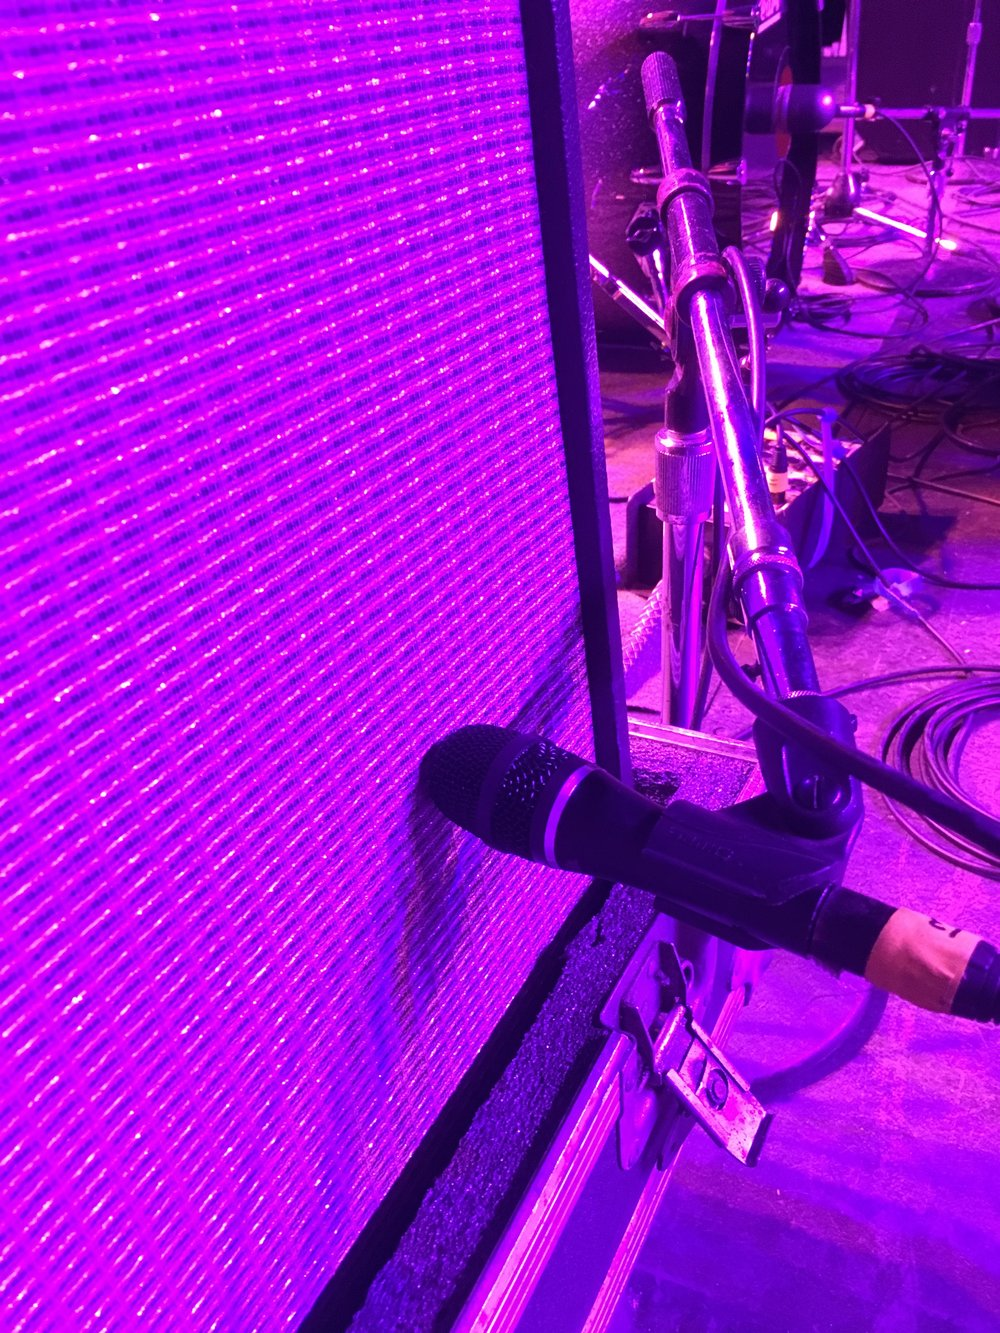 Heil HM-Pro mic on a Fender Deluxe at the New Jersey Crawfish Festival.